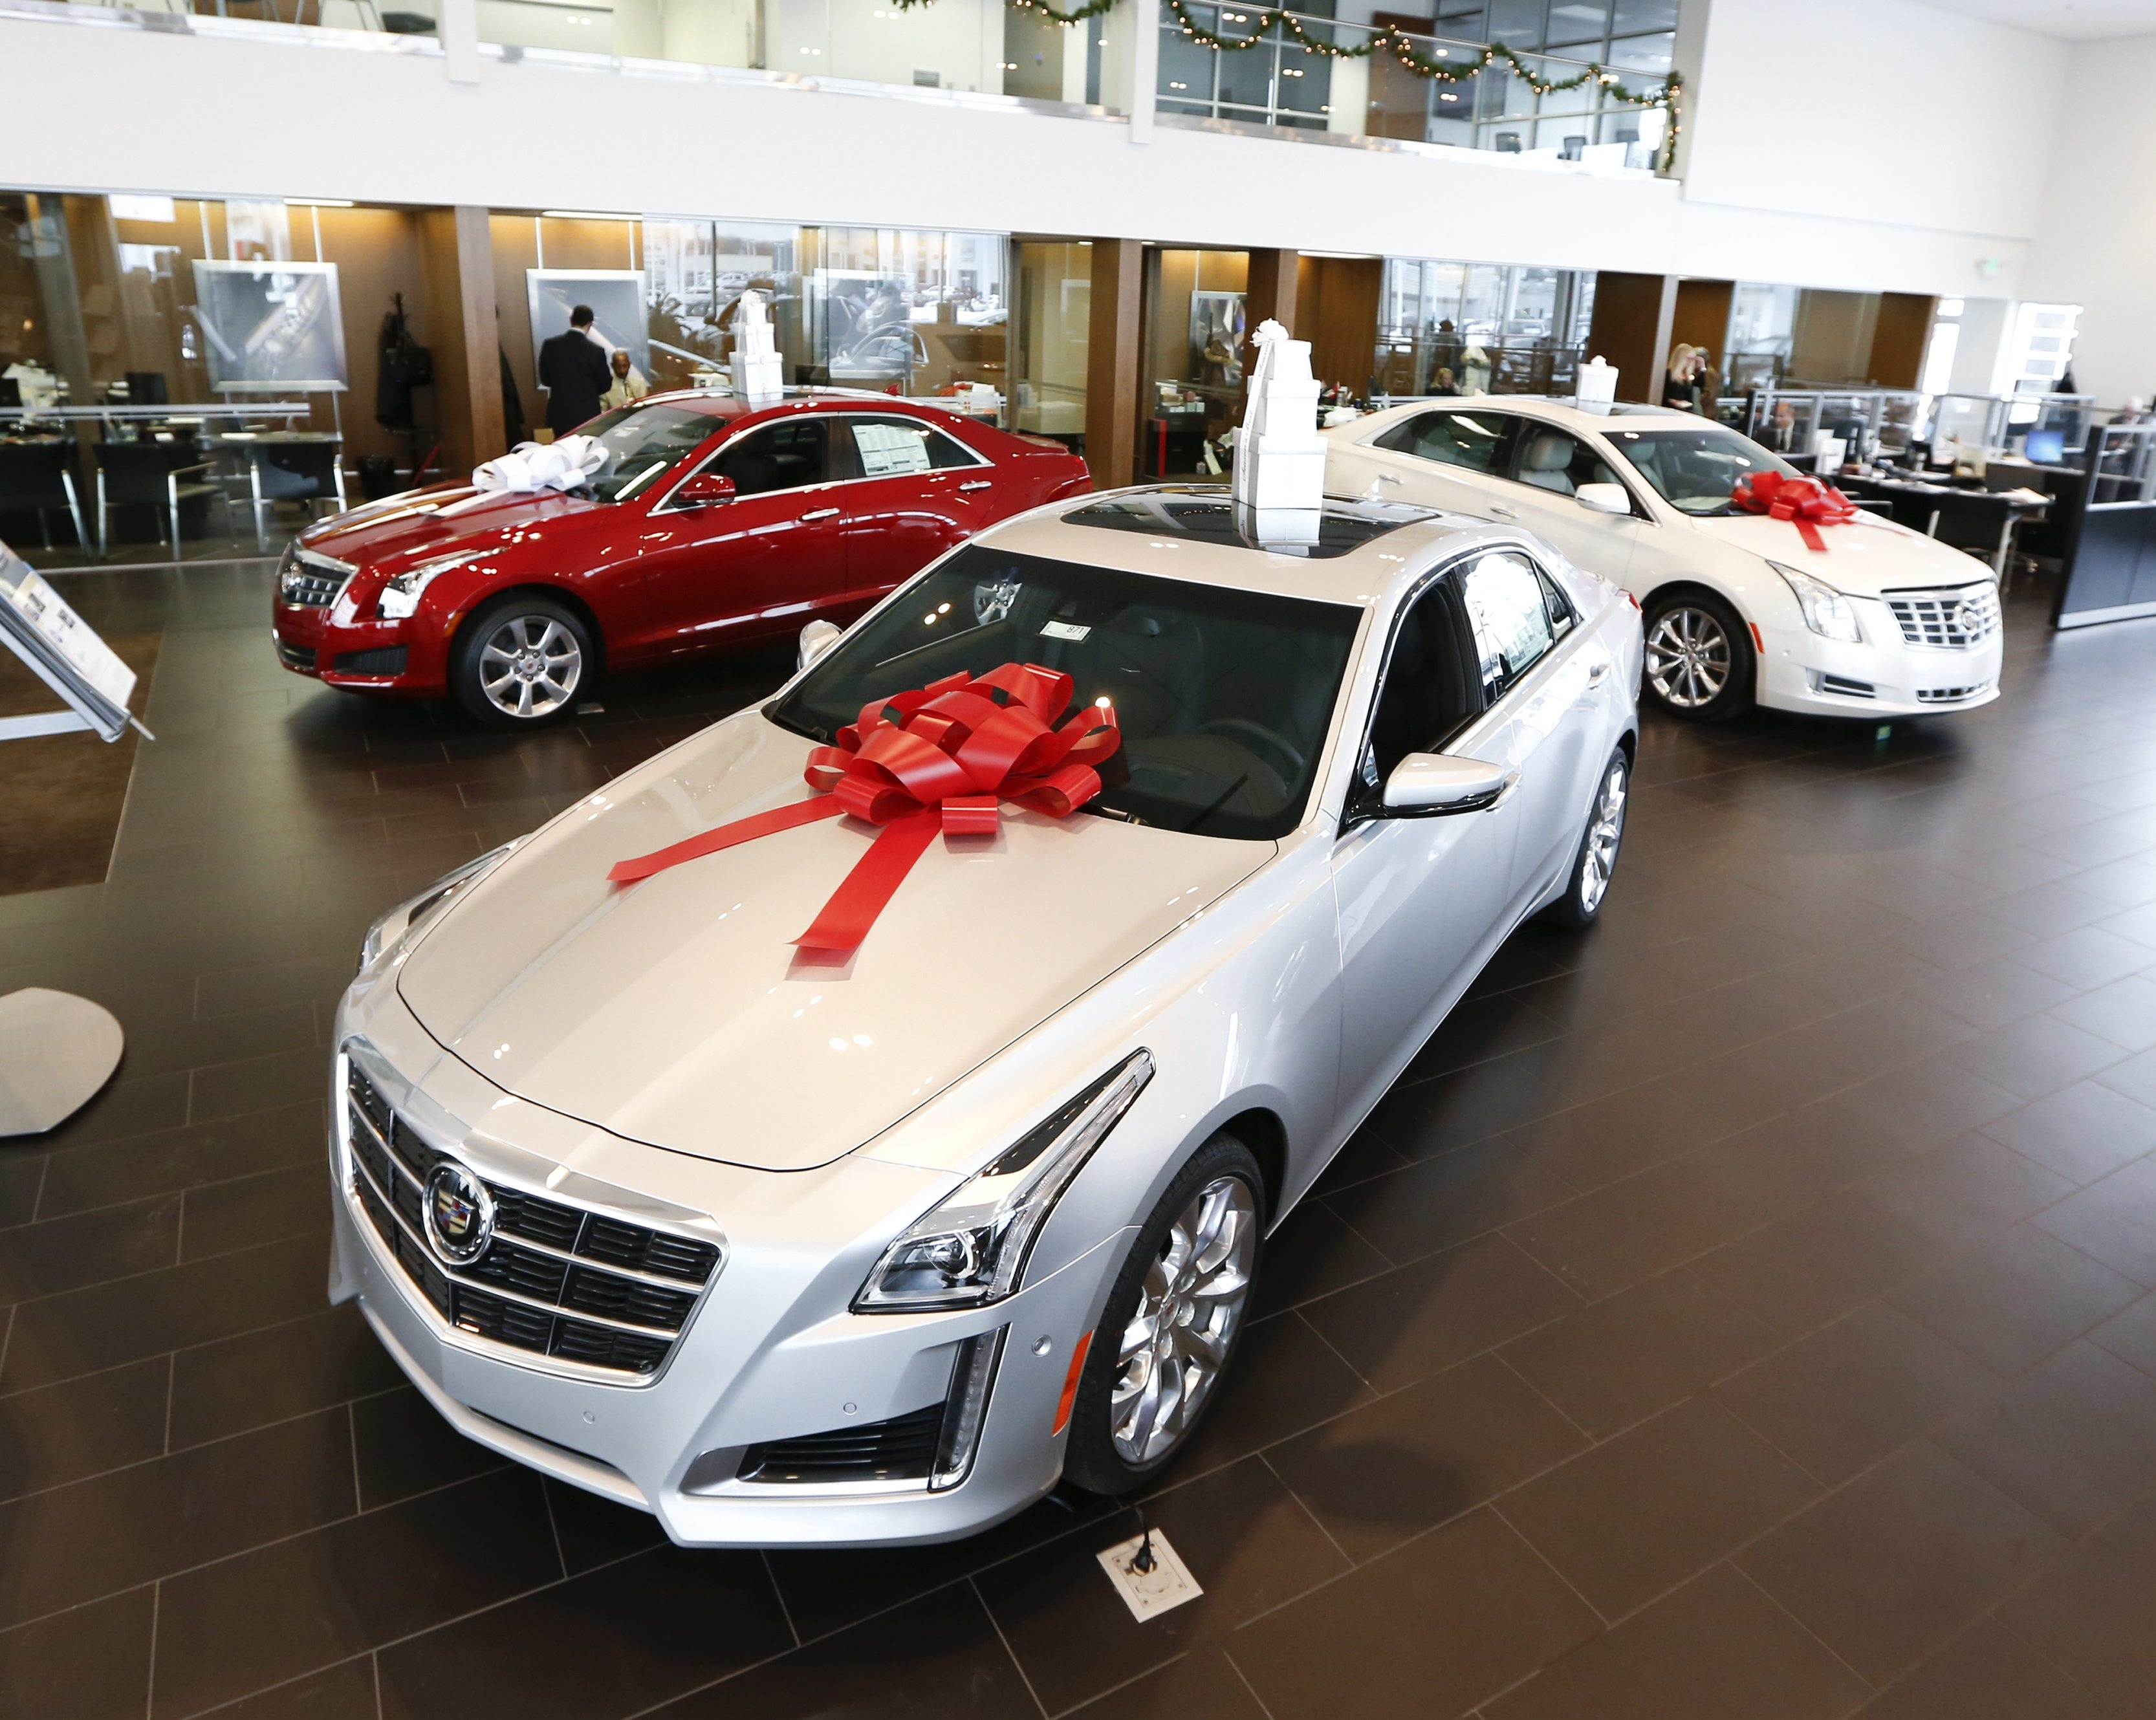 """Cadillac CTS models manufactured from 2003 to 2014 are among the vehicles recalled by General Motors last week for safety problems described as """"unintended ignition key rotation."""""""